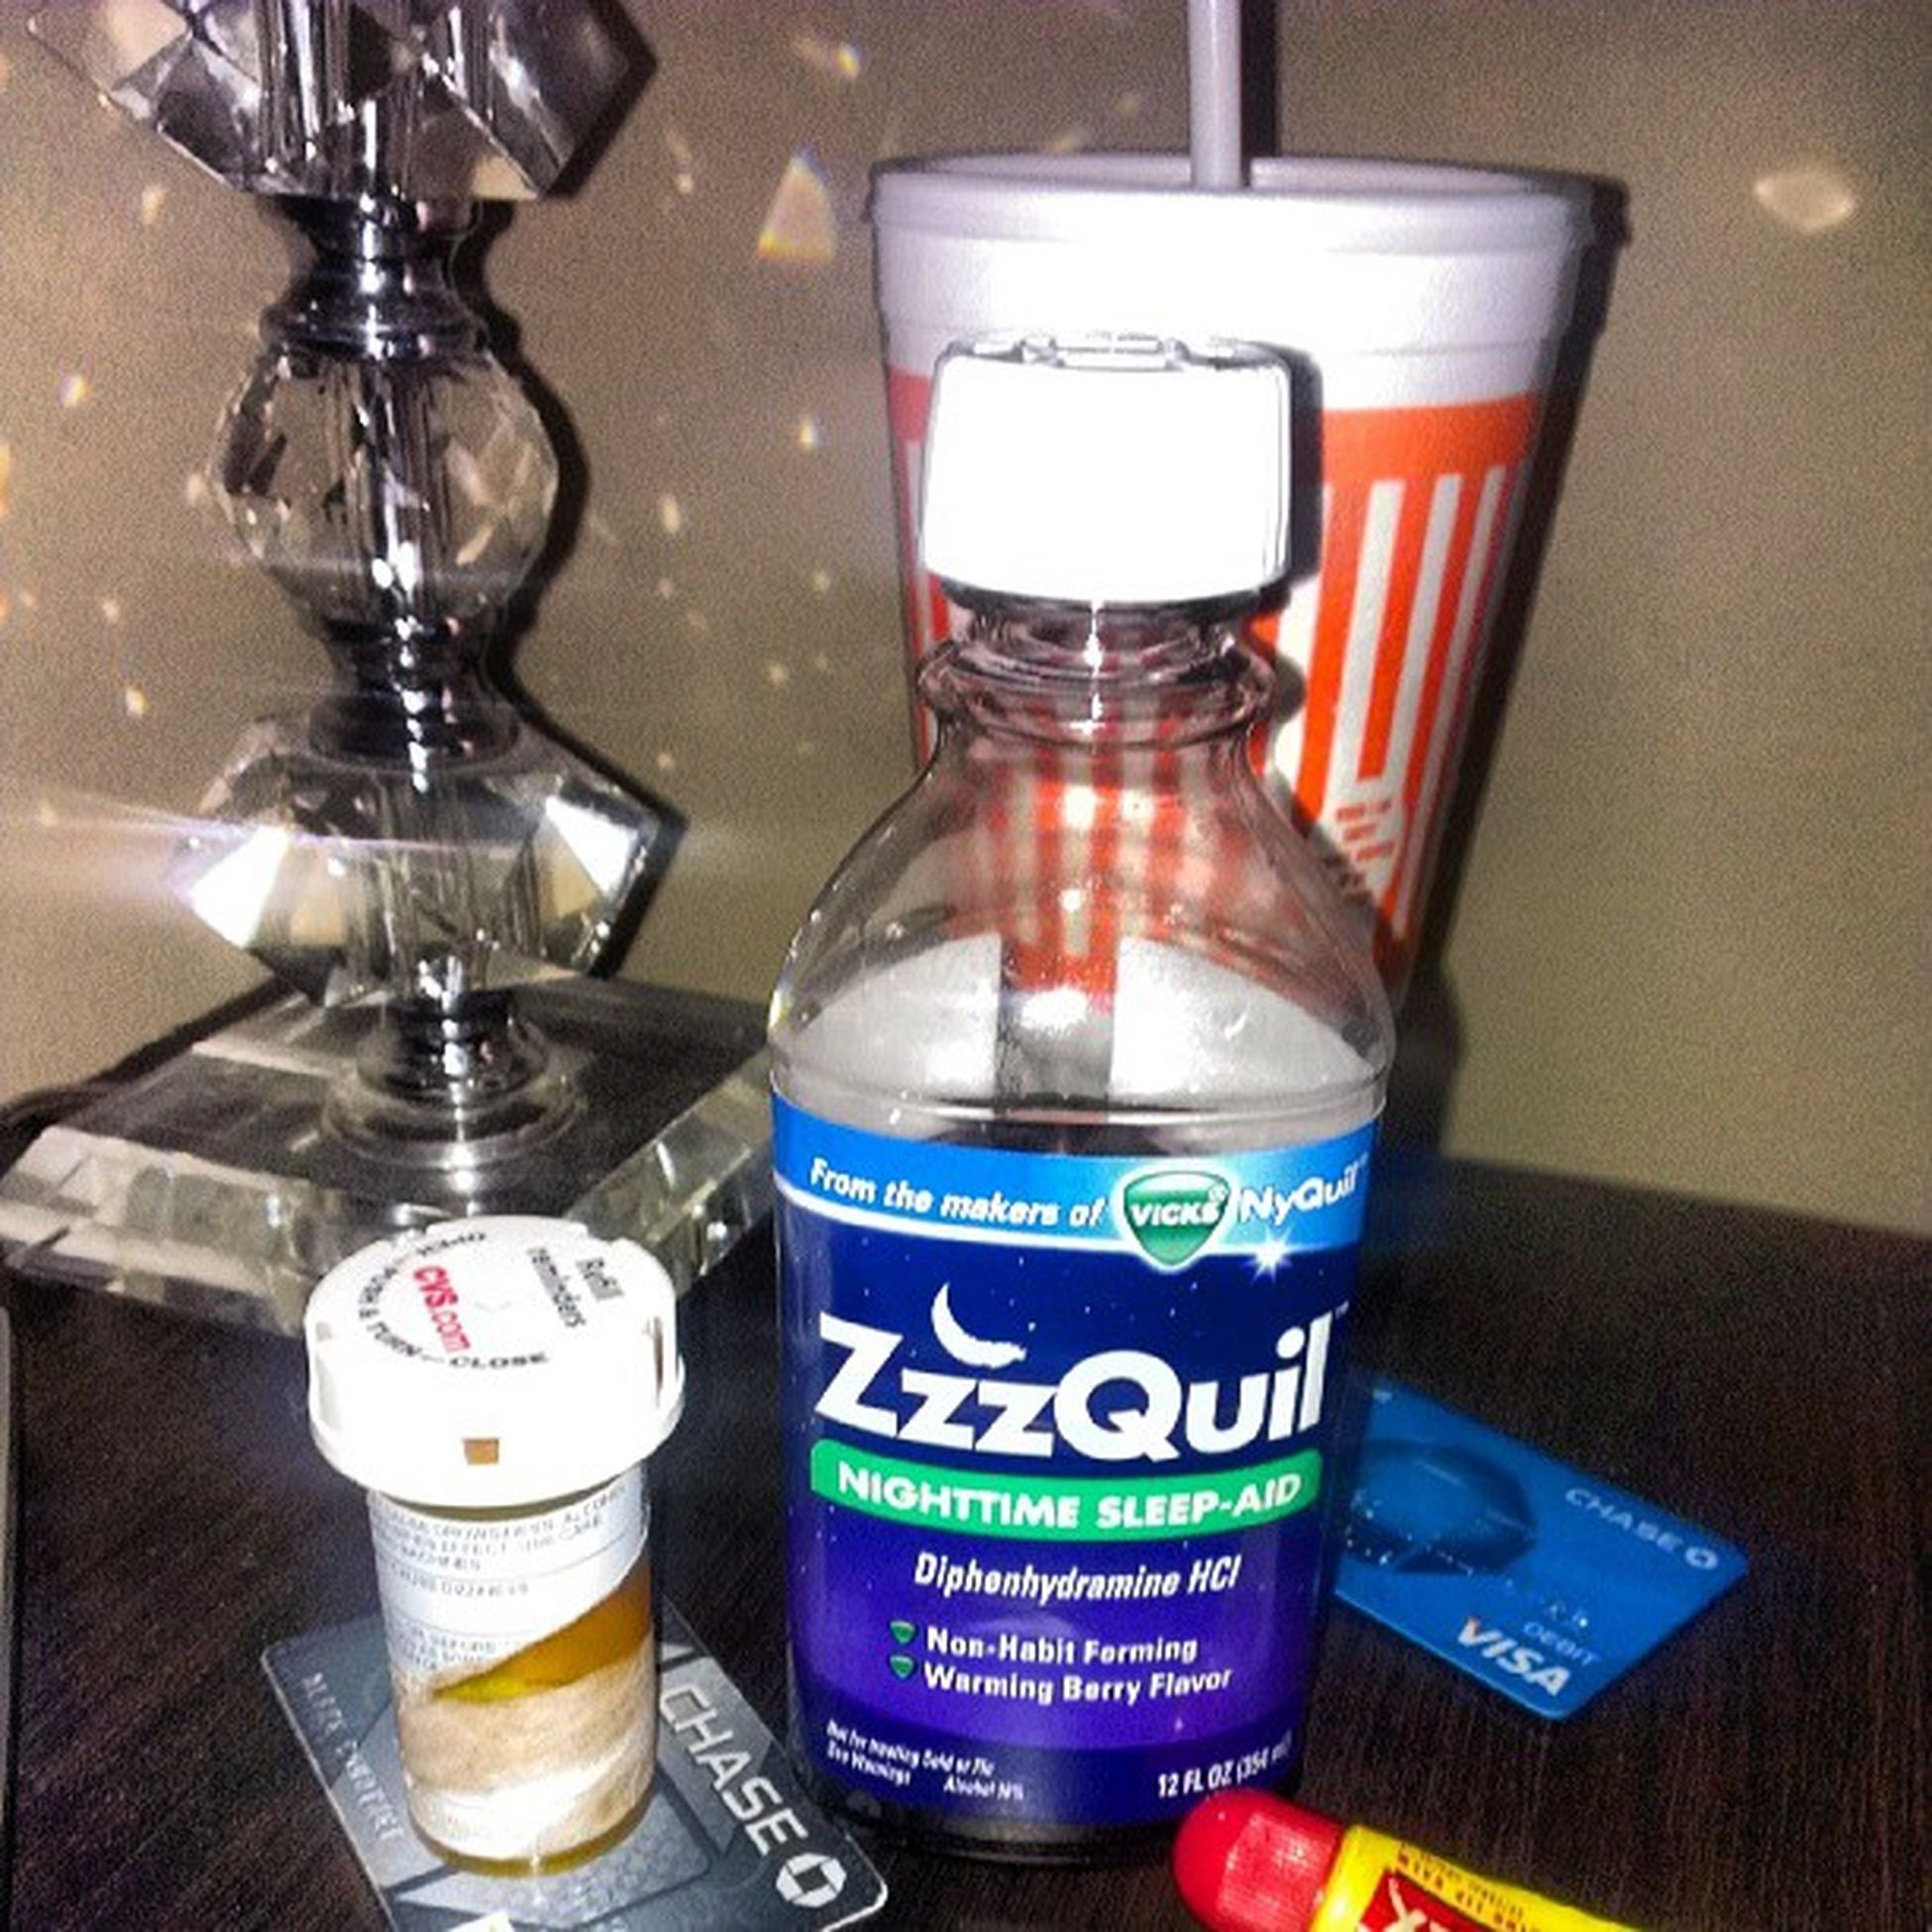 ZzzQuil for MrInsomnia Toomuch Onmymind helpsmesleep oh and a musclerealaxer